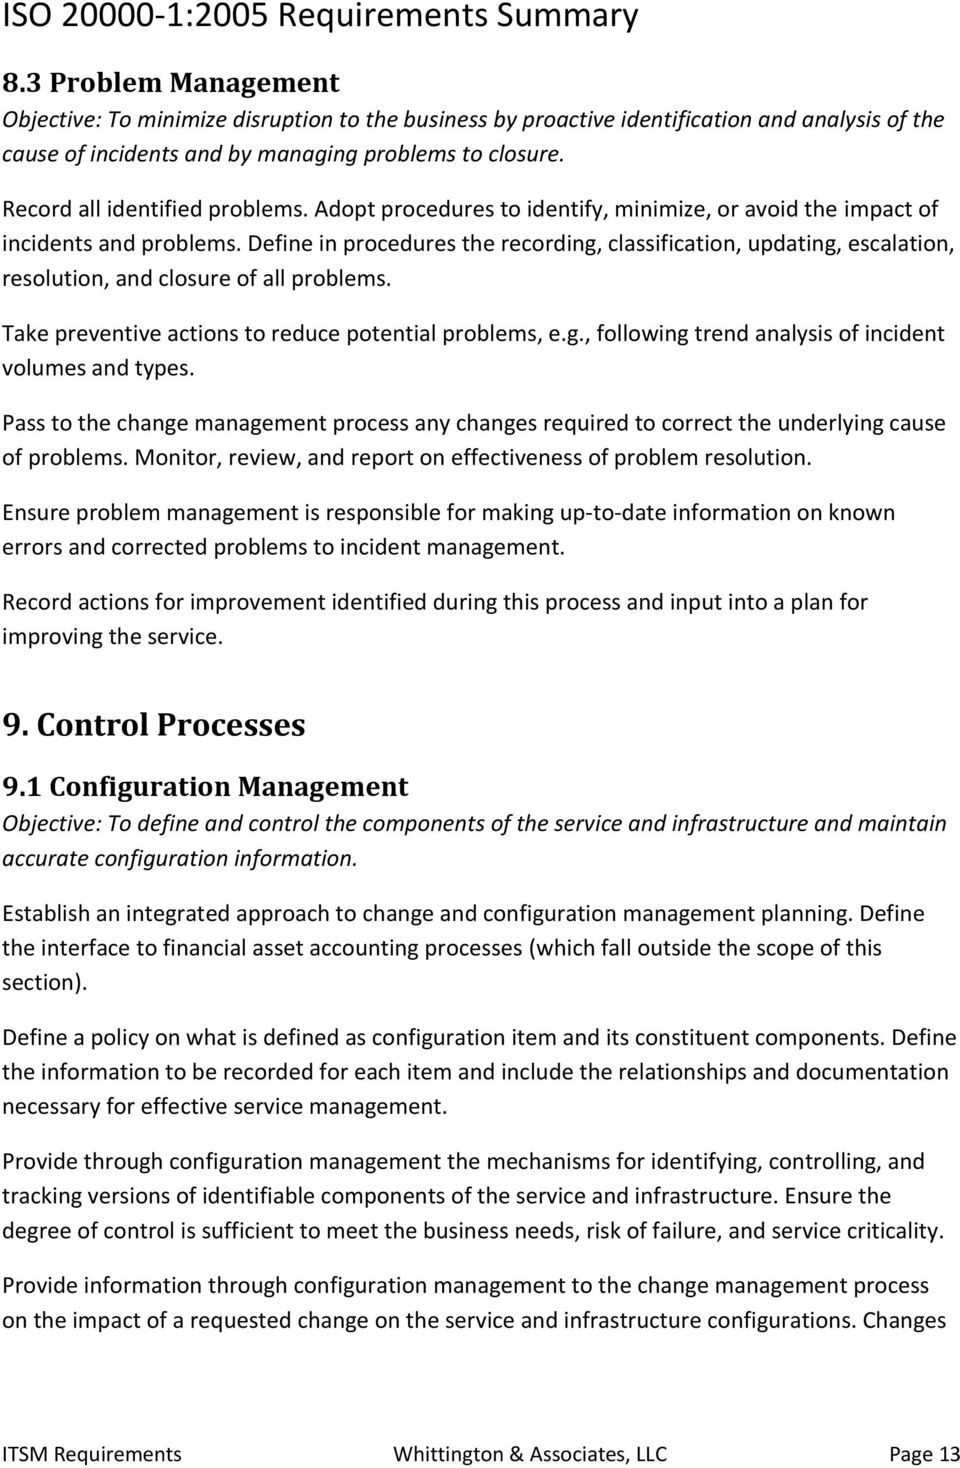 Define in procedures the recording, classification, updating, escalation, resolution, and closure of all problems. Take preventive actions to reduce potential problems, e.g., following trend analysis of incident volumes and types.